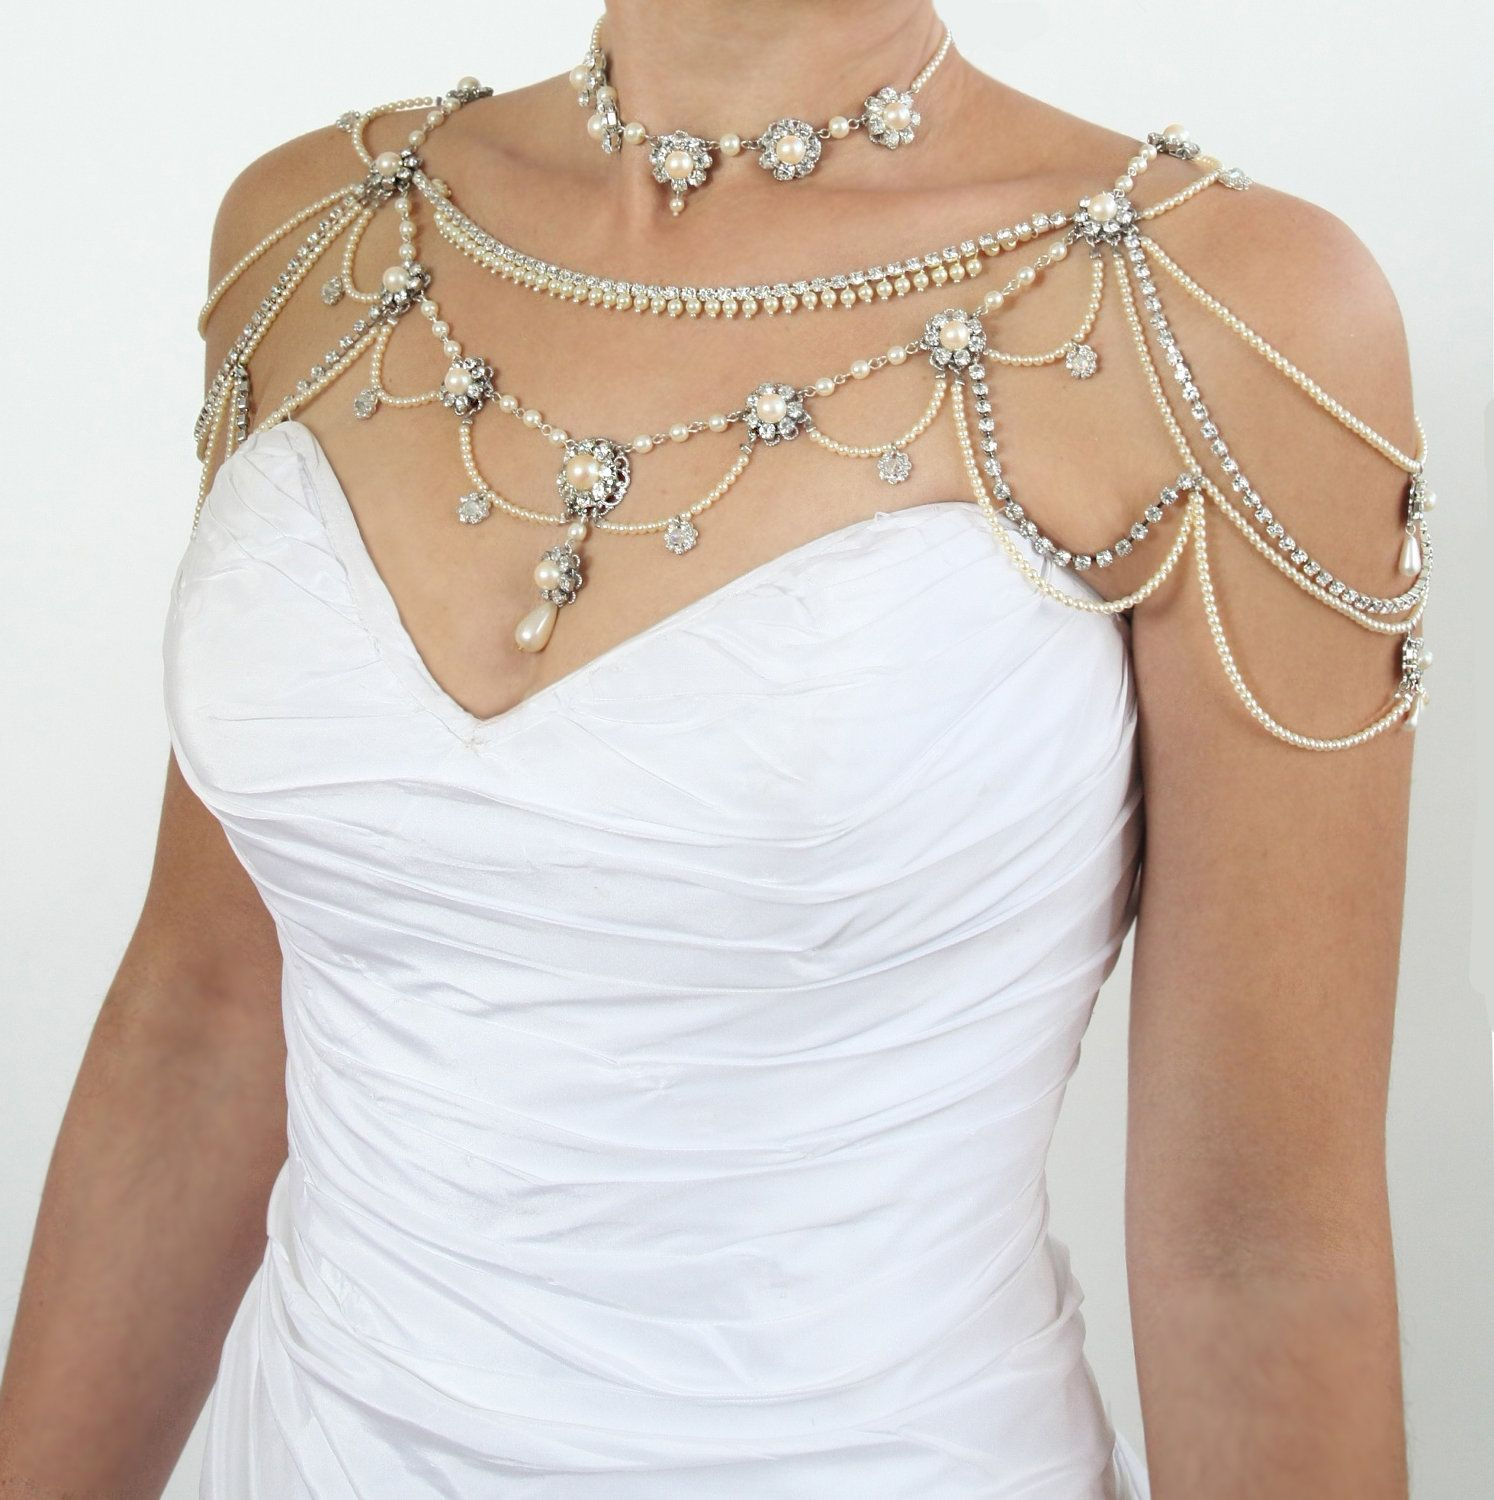 Necklace For The SHOULDERSBridal Victorian StylePearls Rhinestone